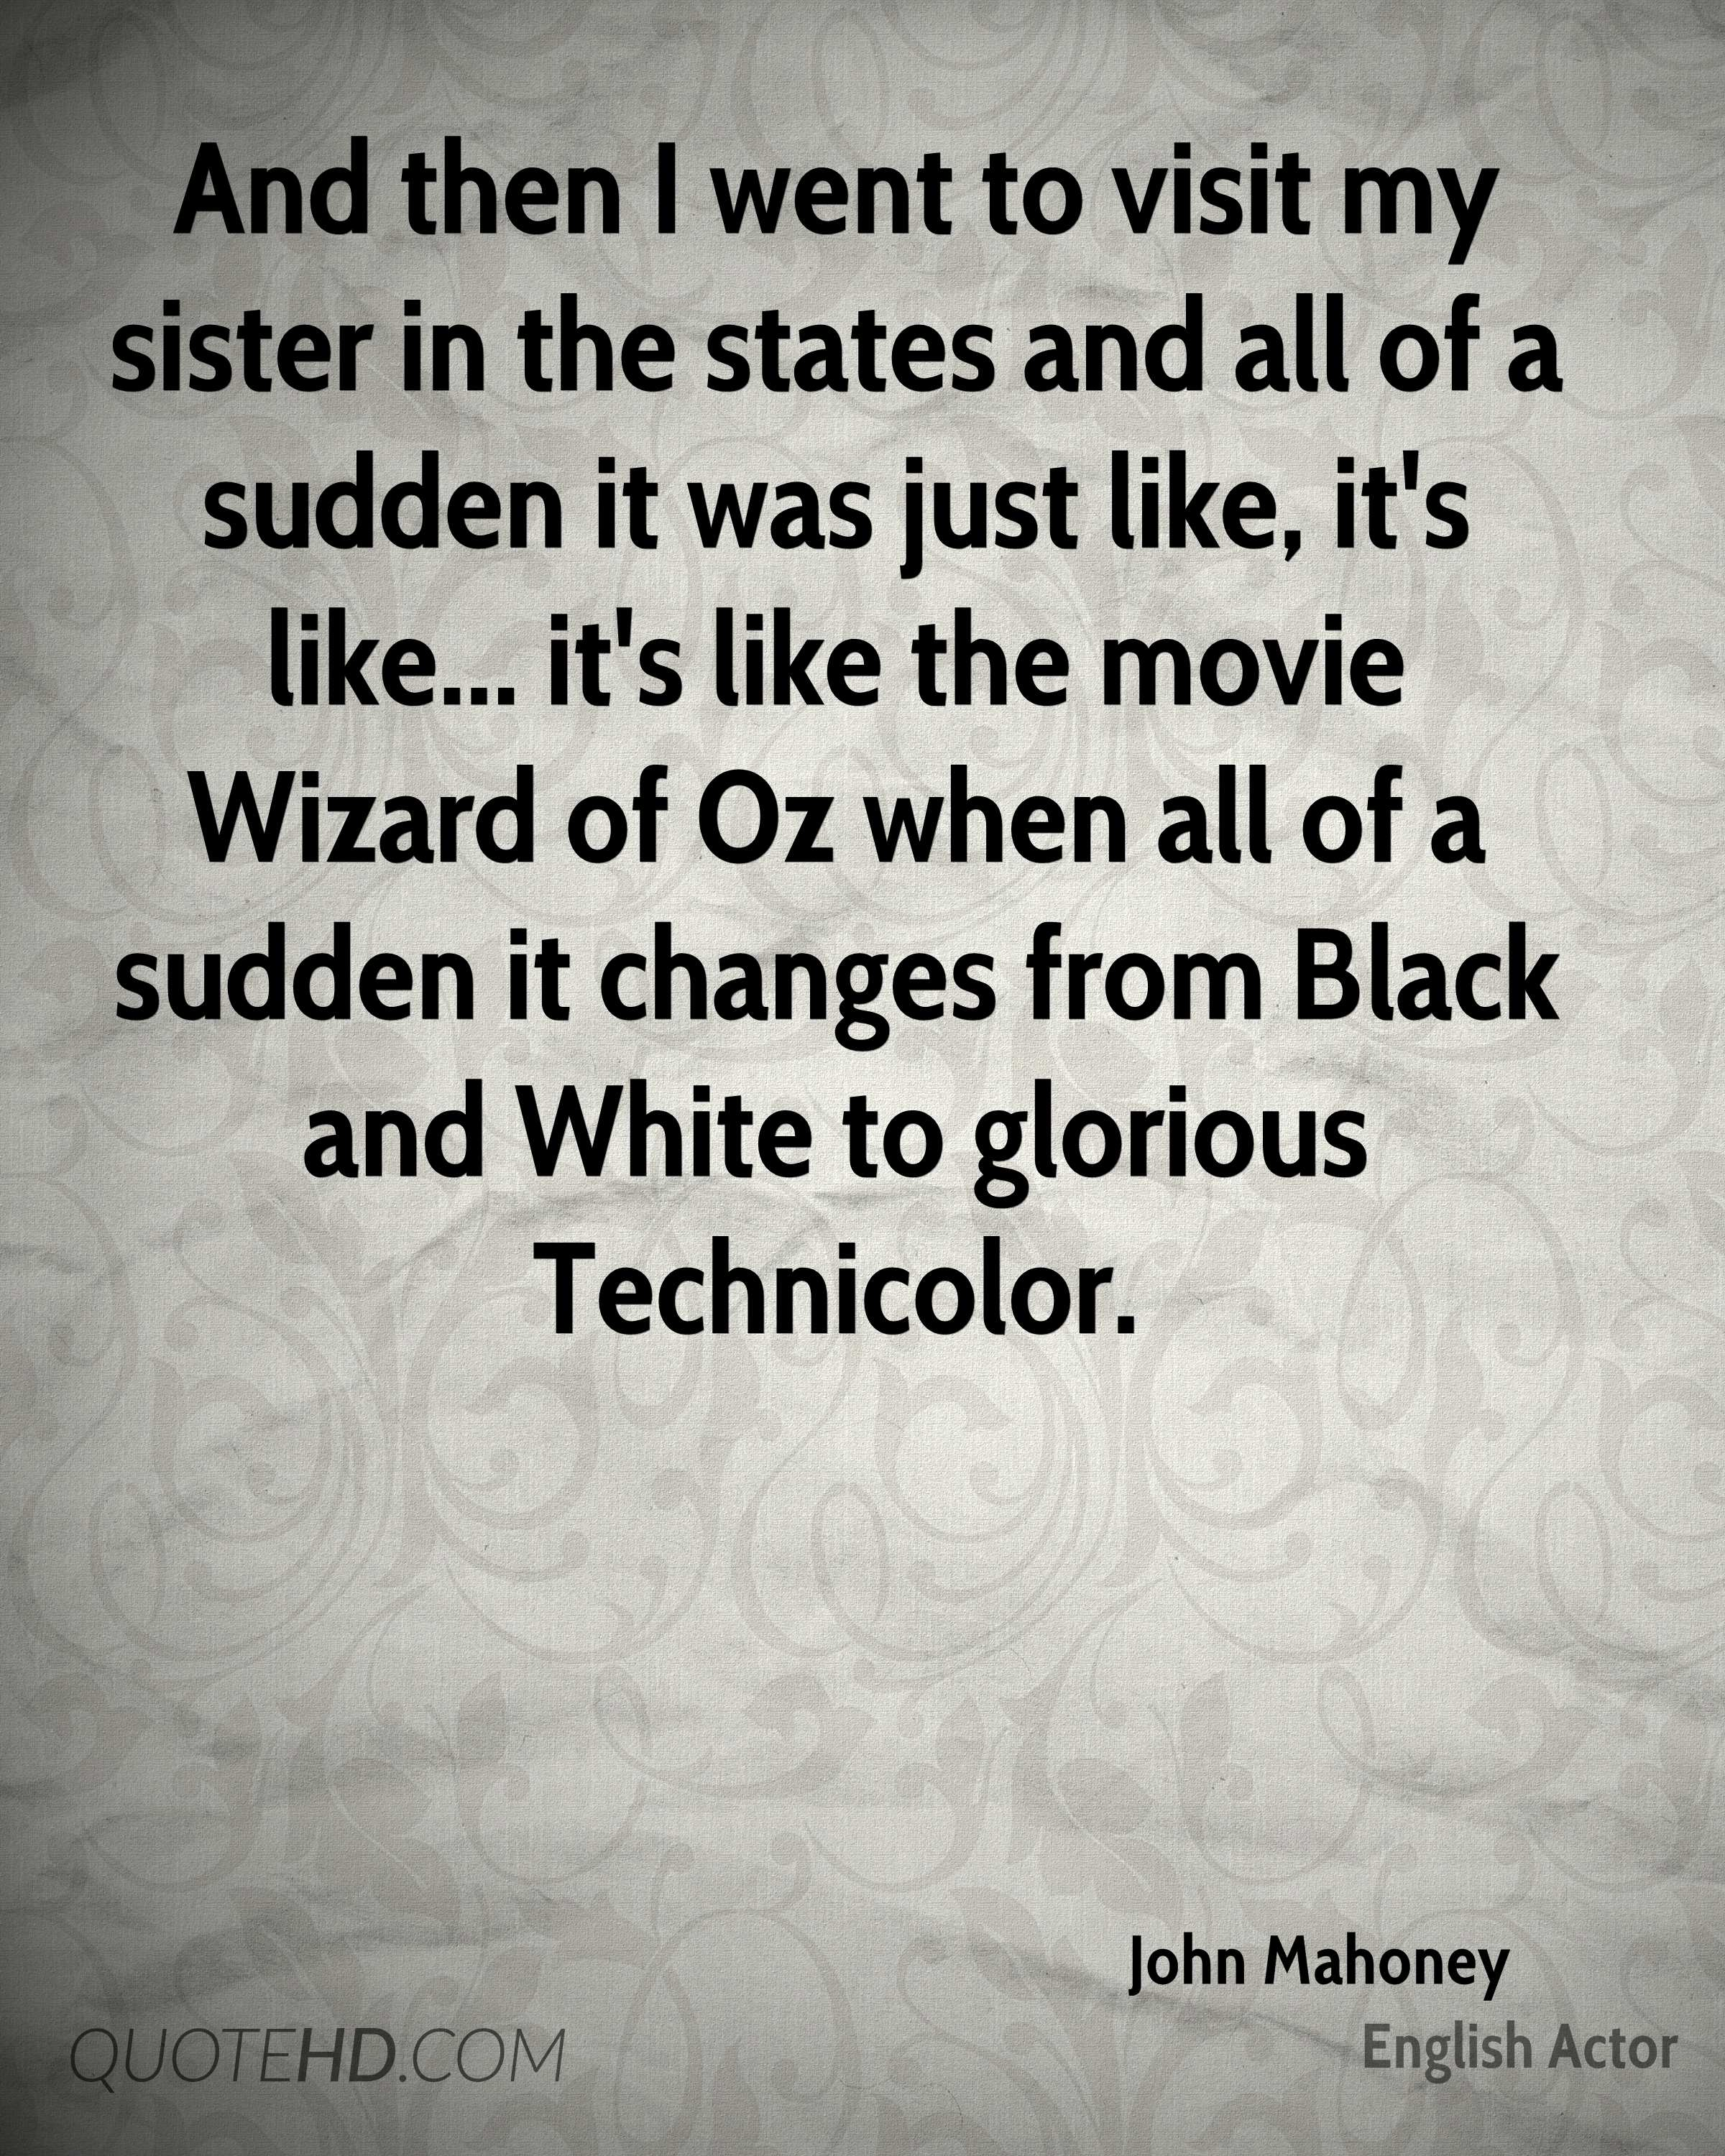 Wizard of oz quotes - John Mahoney And Then I Went To Visit My Sister In The States And All